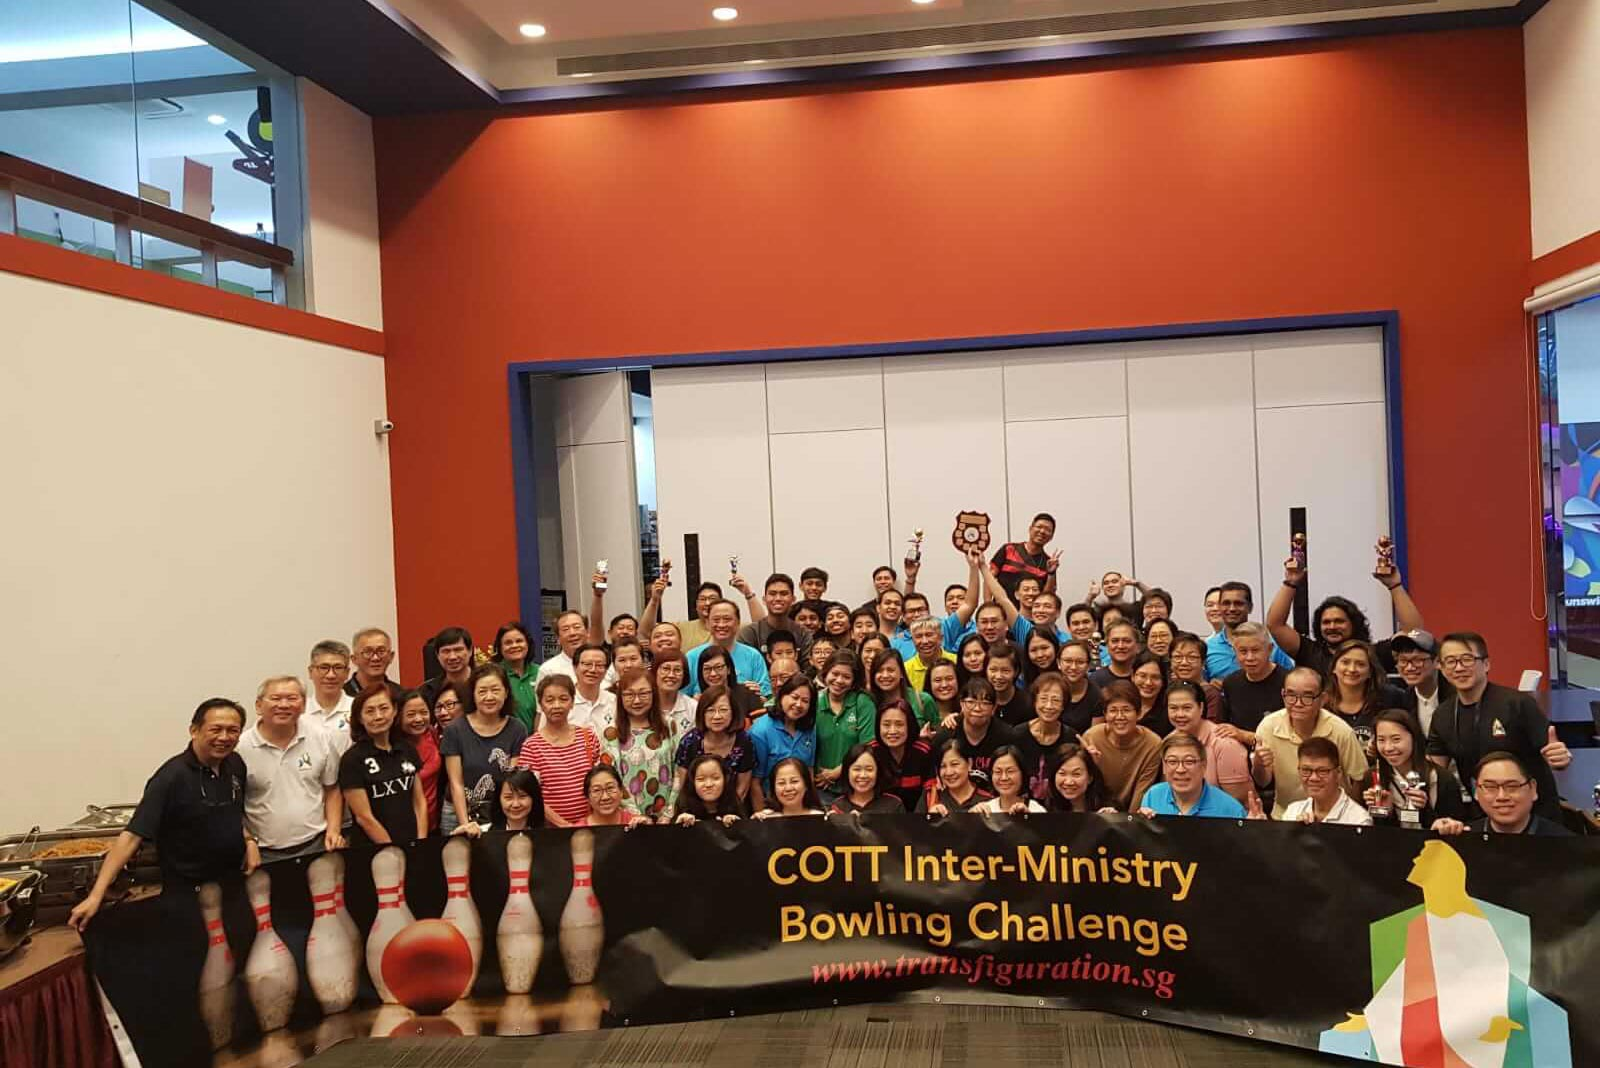 COTT INTER-MINISTRY BOWLING CHALLENGE 2019